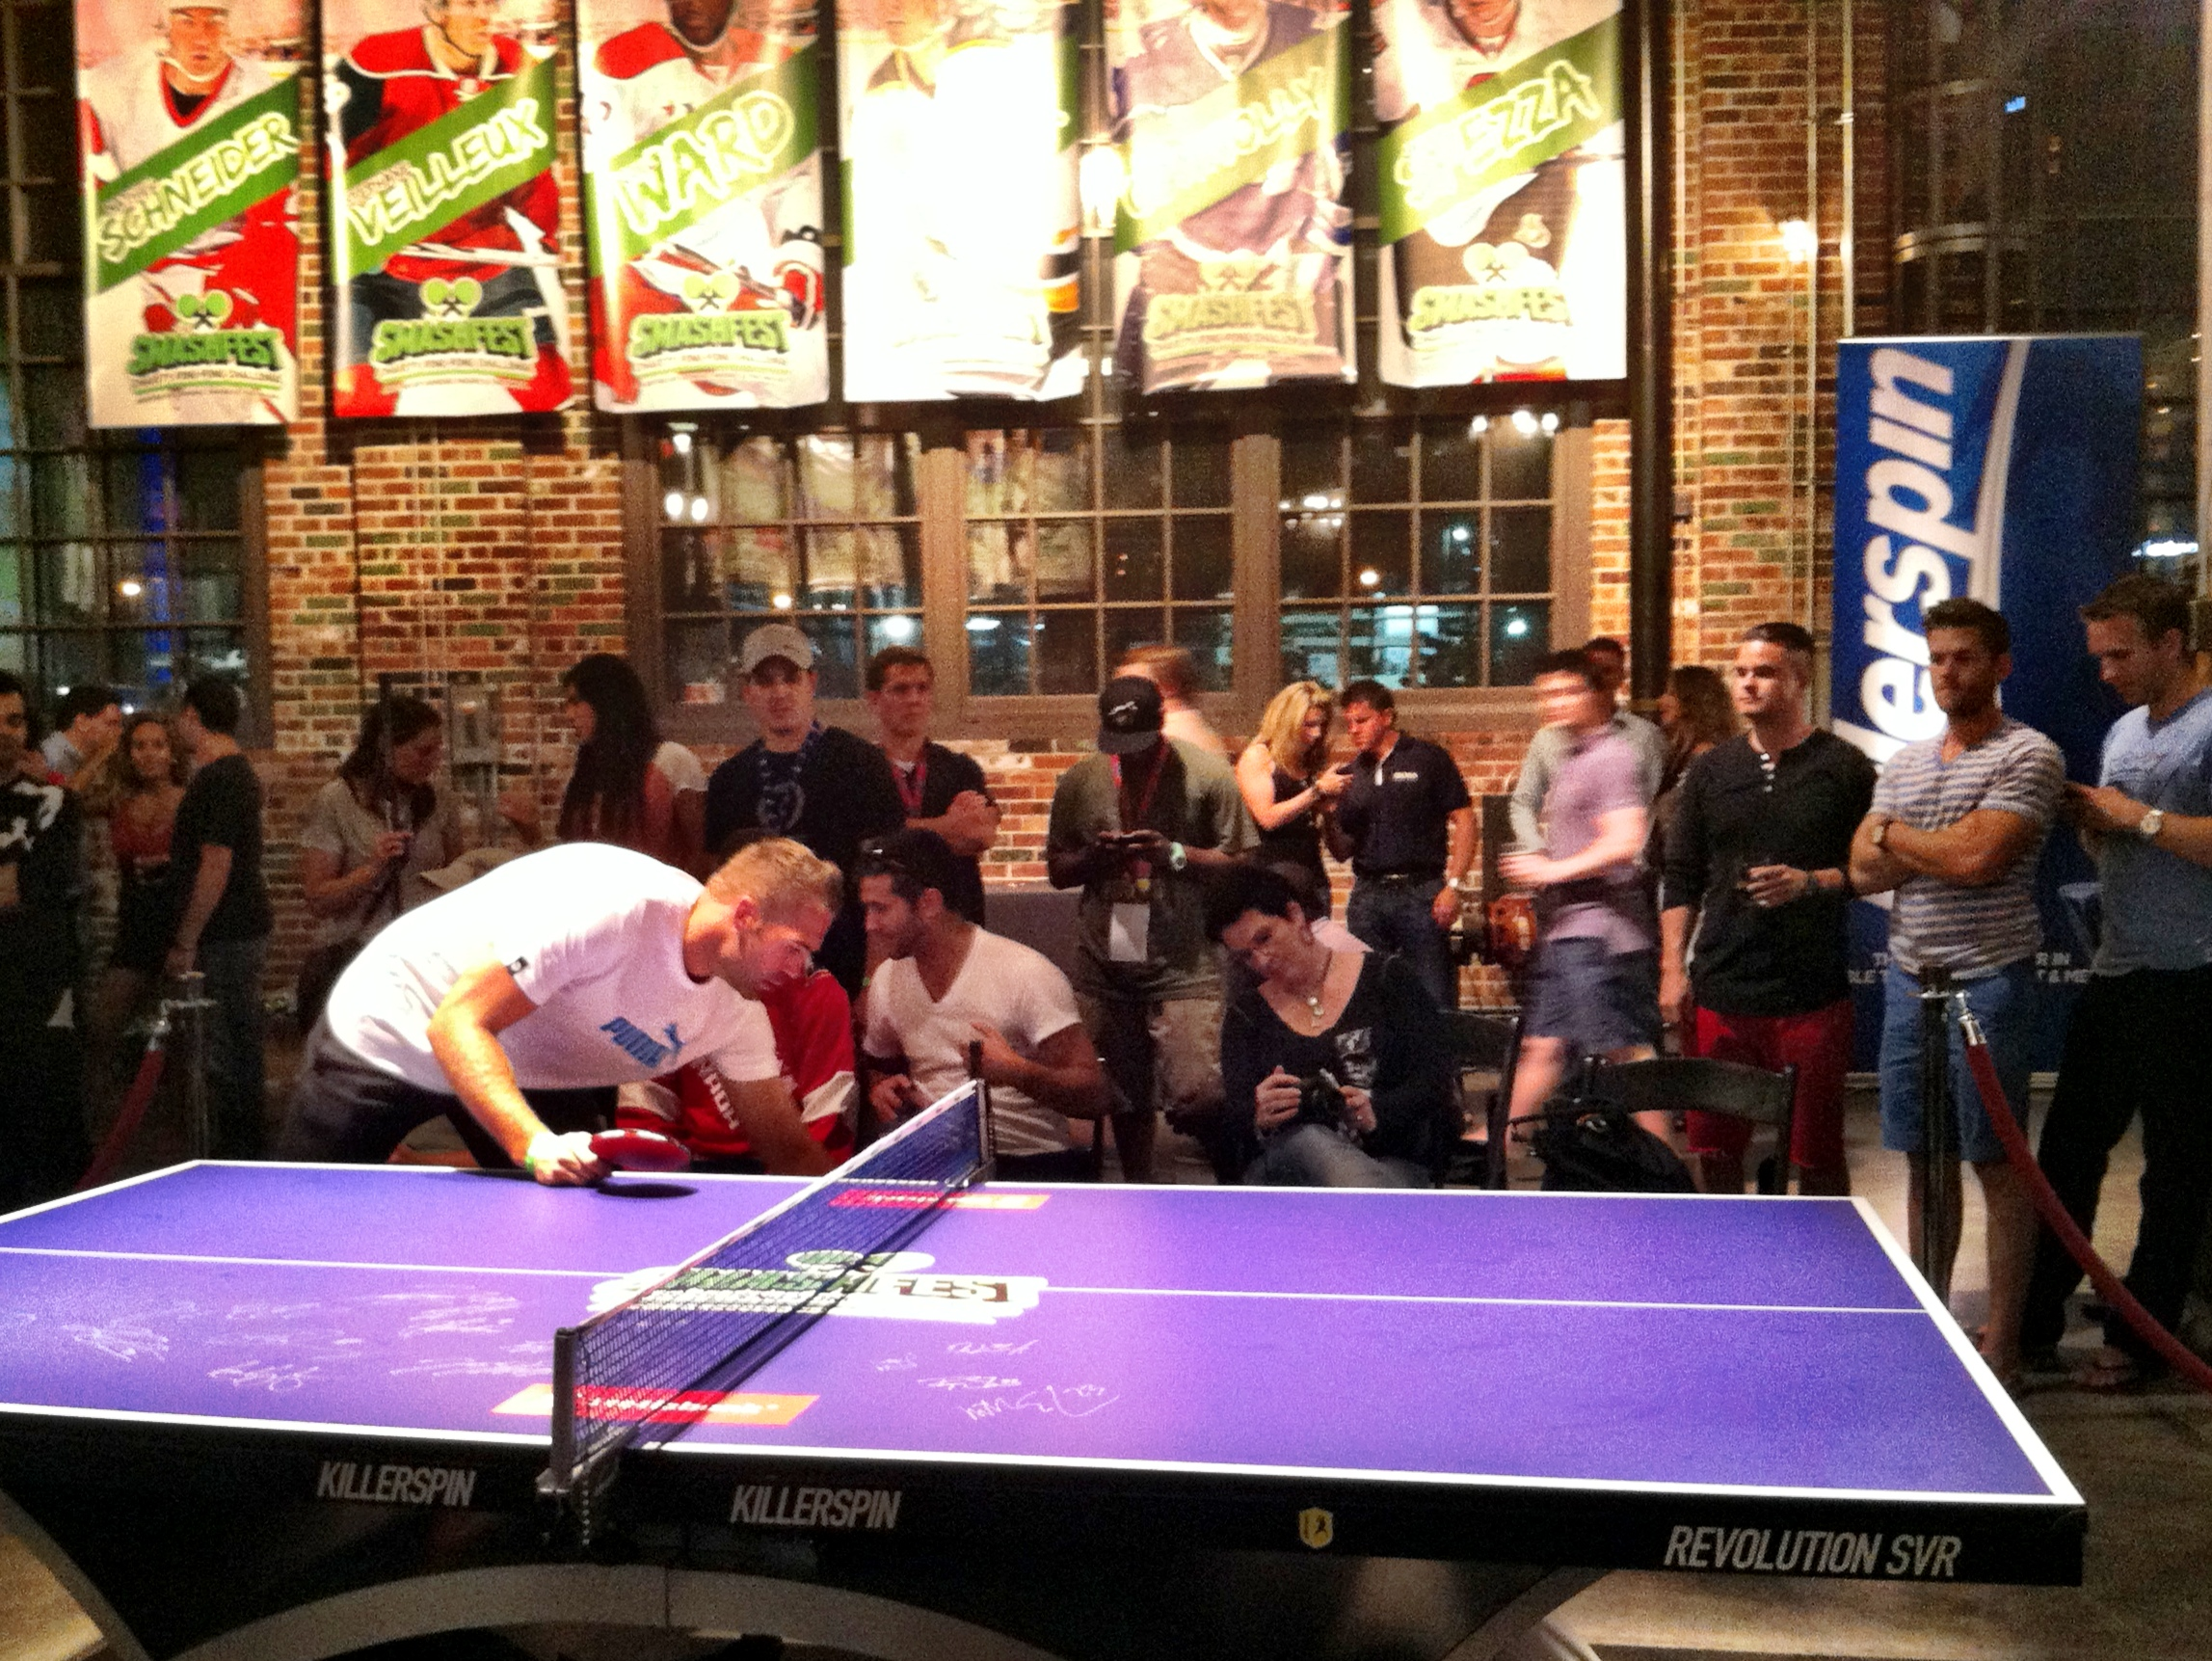 A Smashing Success: Over $20K Raised for Charity at NHLPA's Inaugural Smashfest!